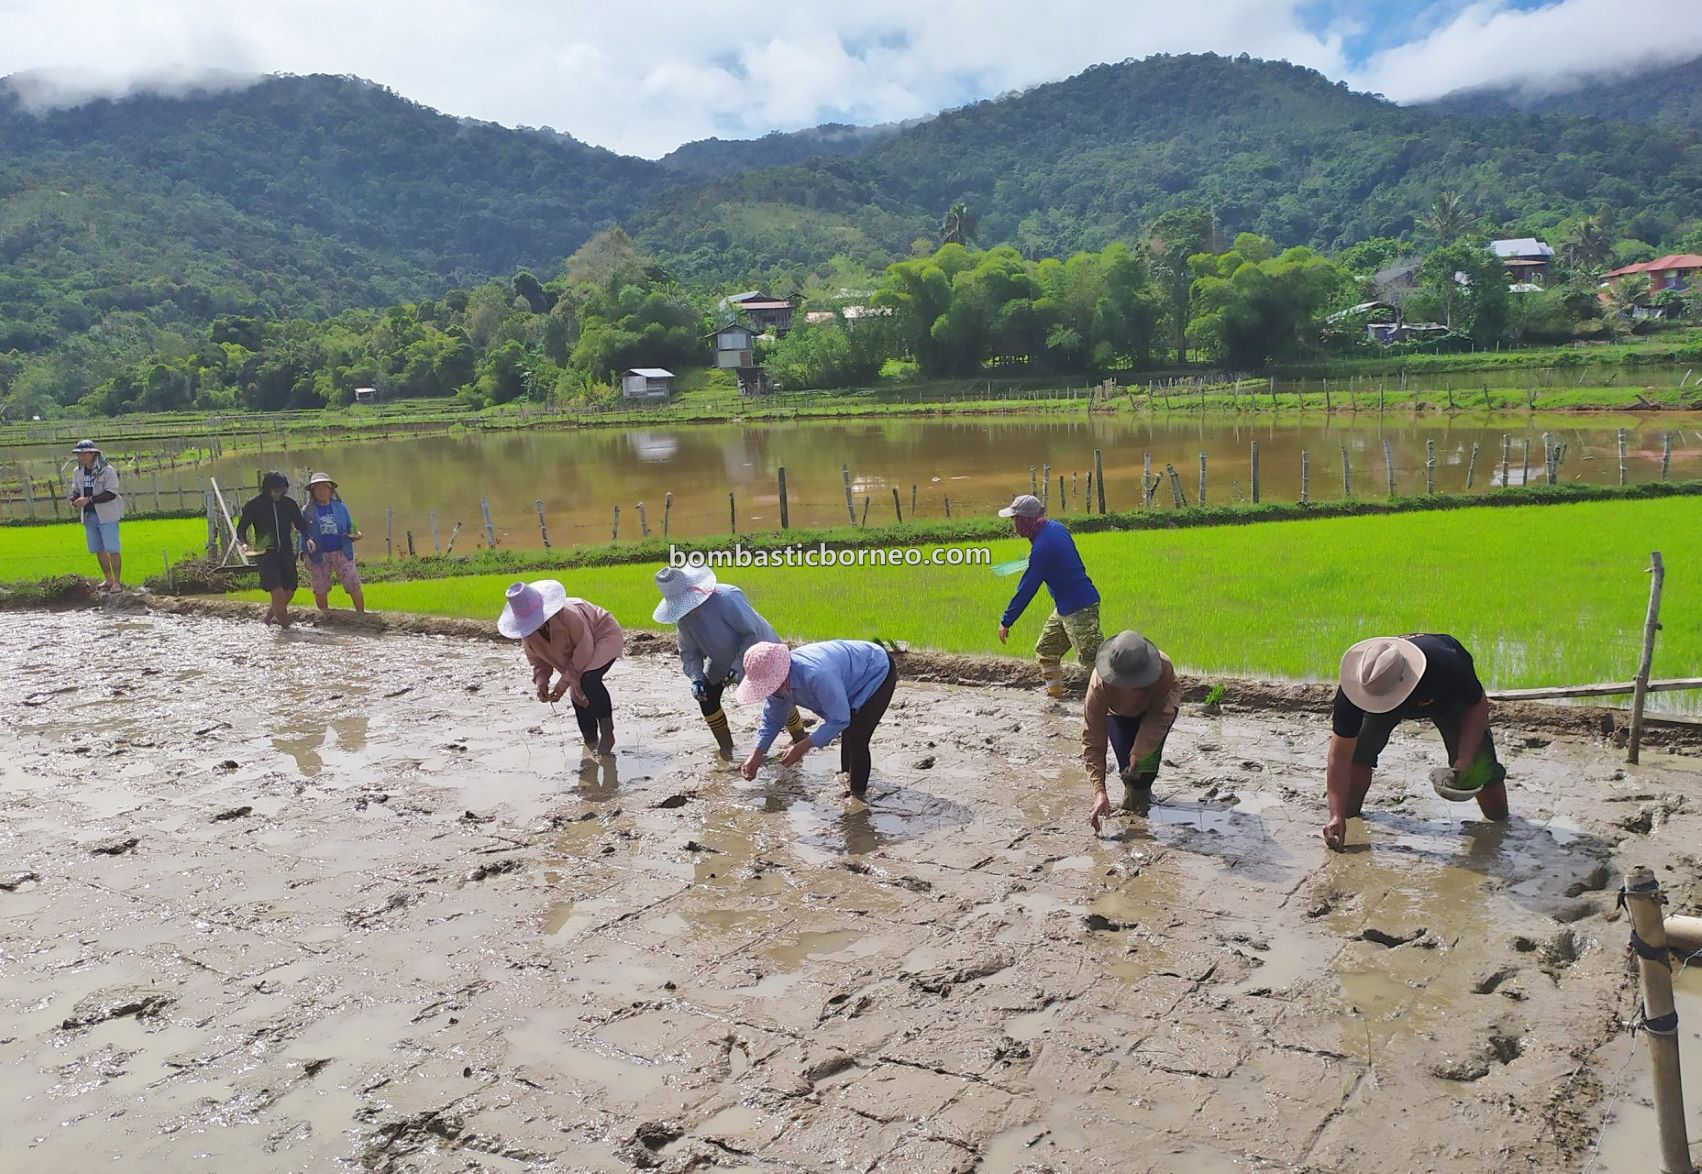 System of Rice Intensification, backpackers, Interior, village, Lawas, Long Langai, Malaysia, Borneo, Lun Bawang, native, tourist attraction, travel guide, 探索婆罗洲游踪, 砂拉越原住民部落, 巴卡拉兰水稻种植